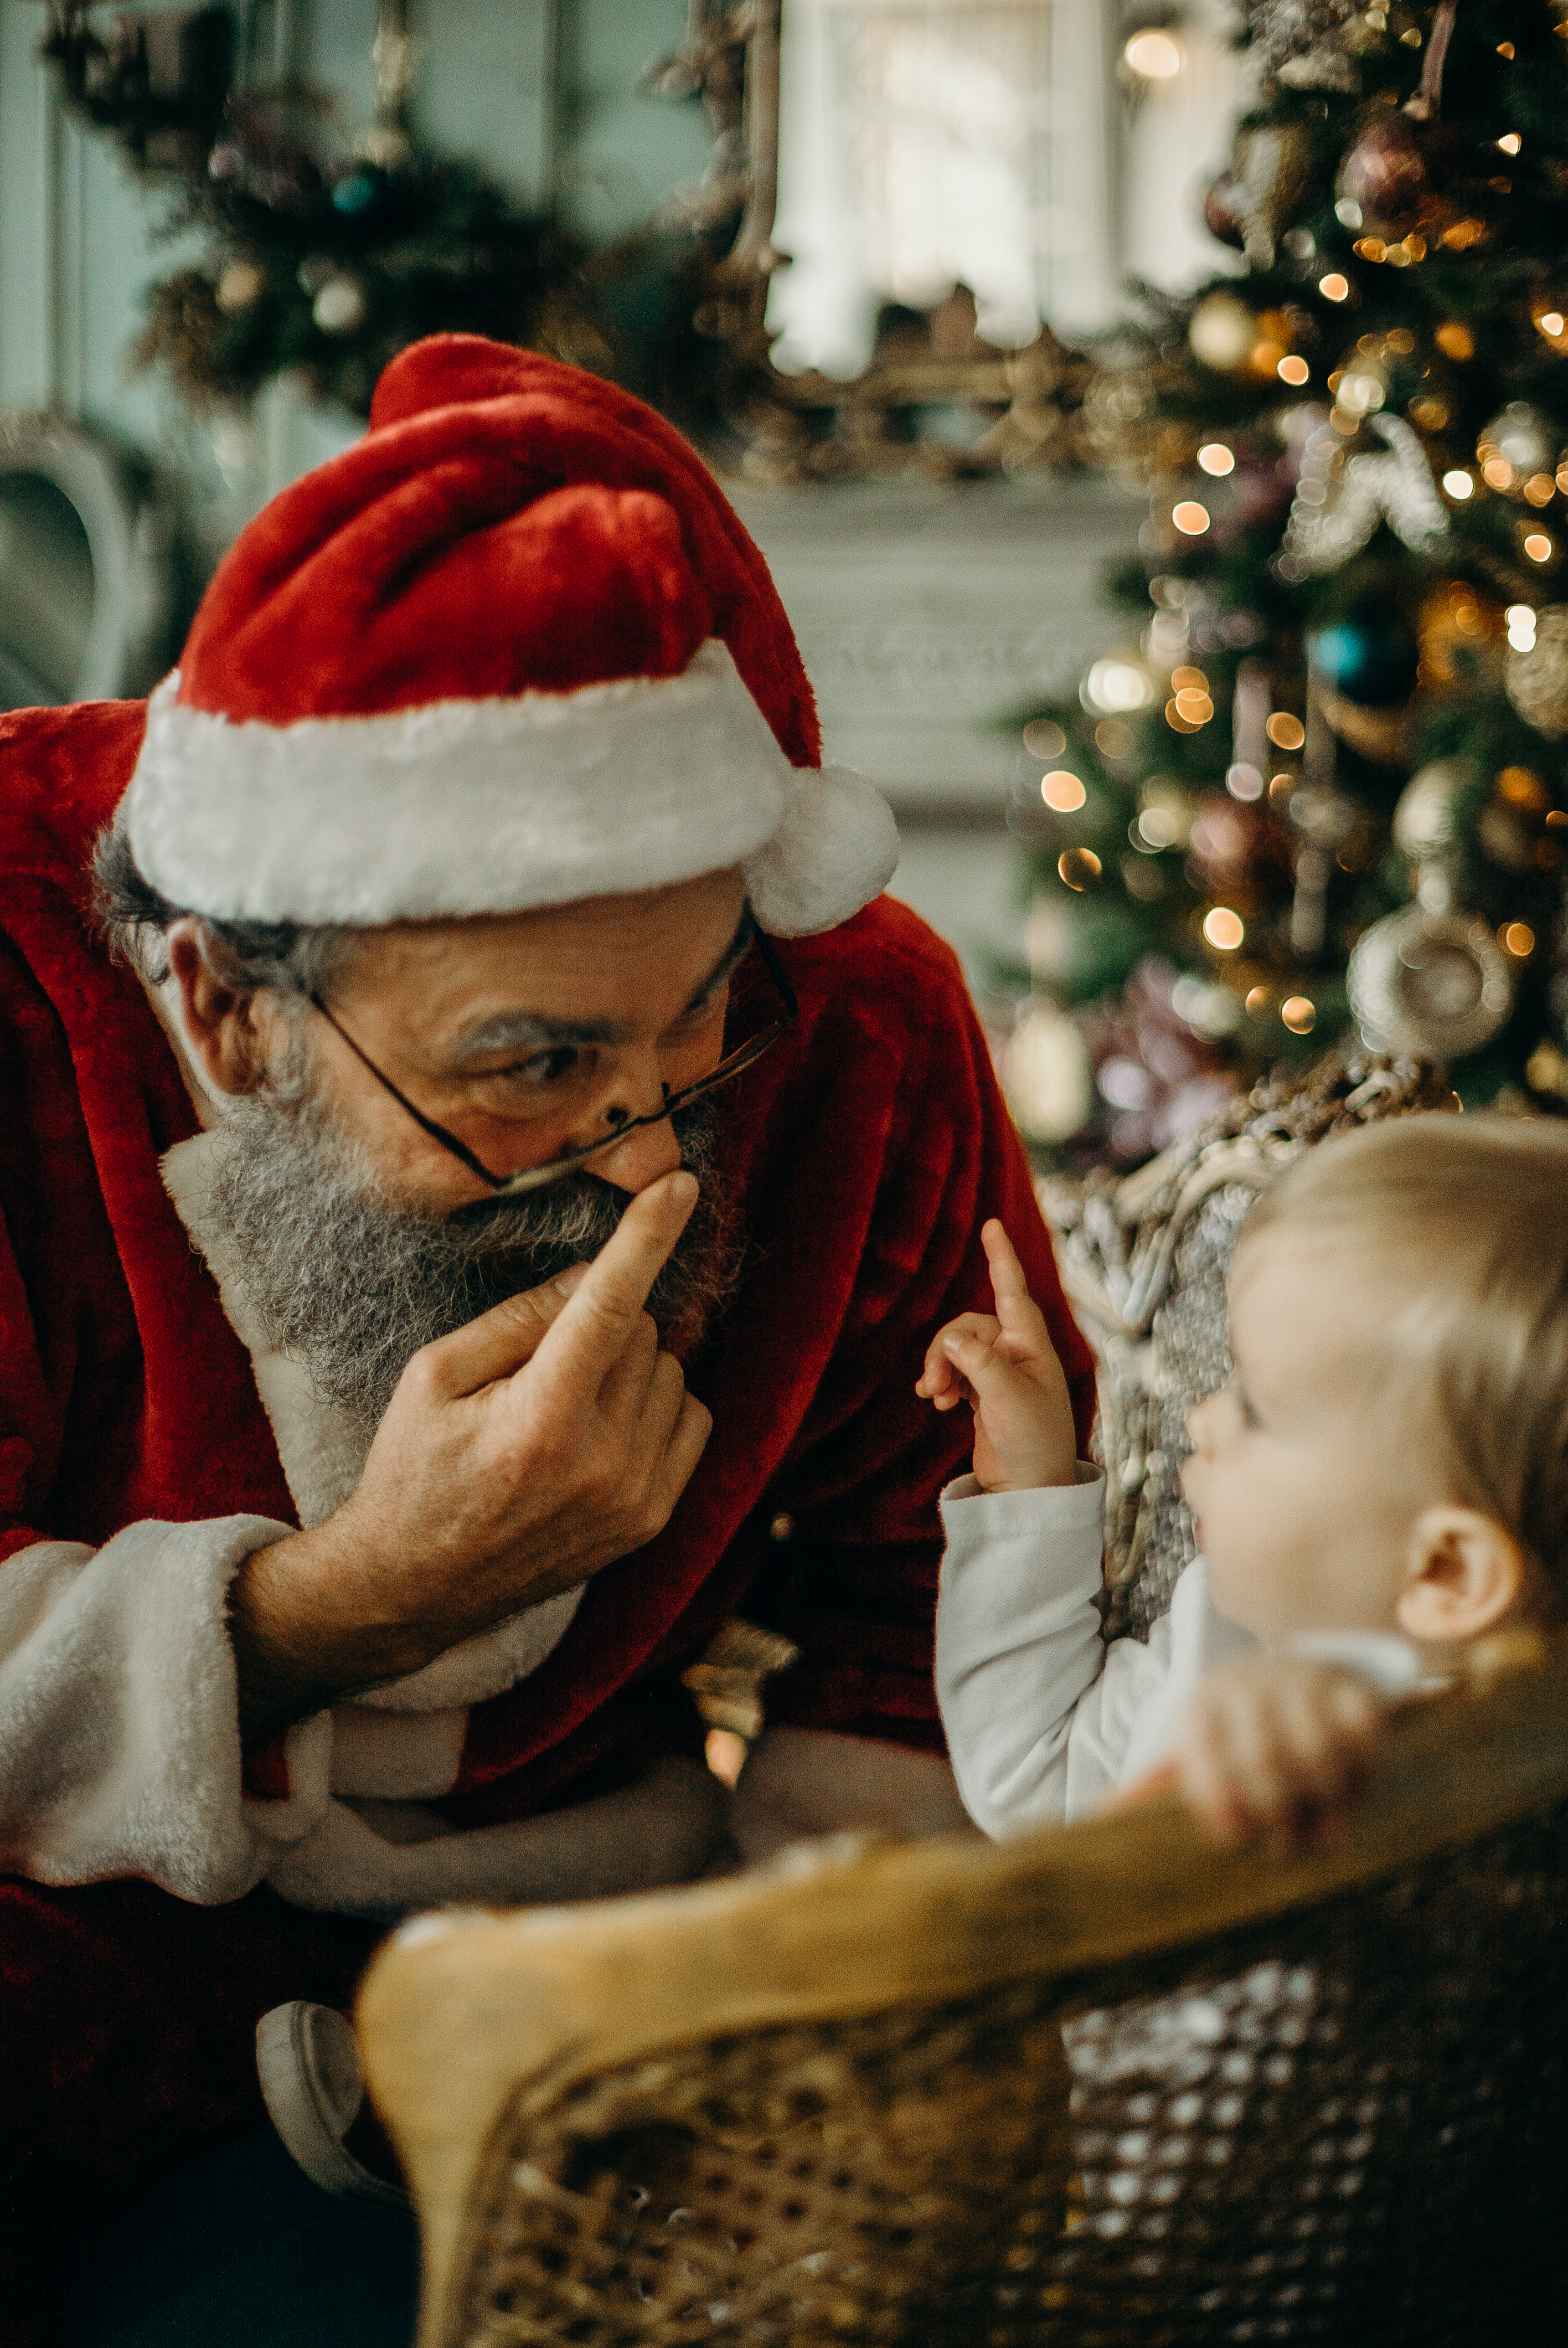 Man in Red Santa Claus Costume Standing Beside Toddler